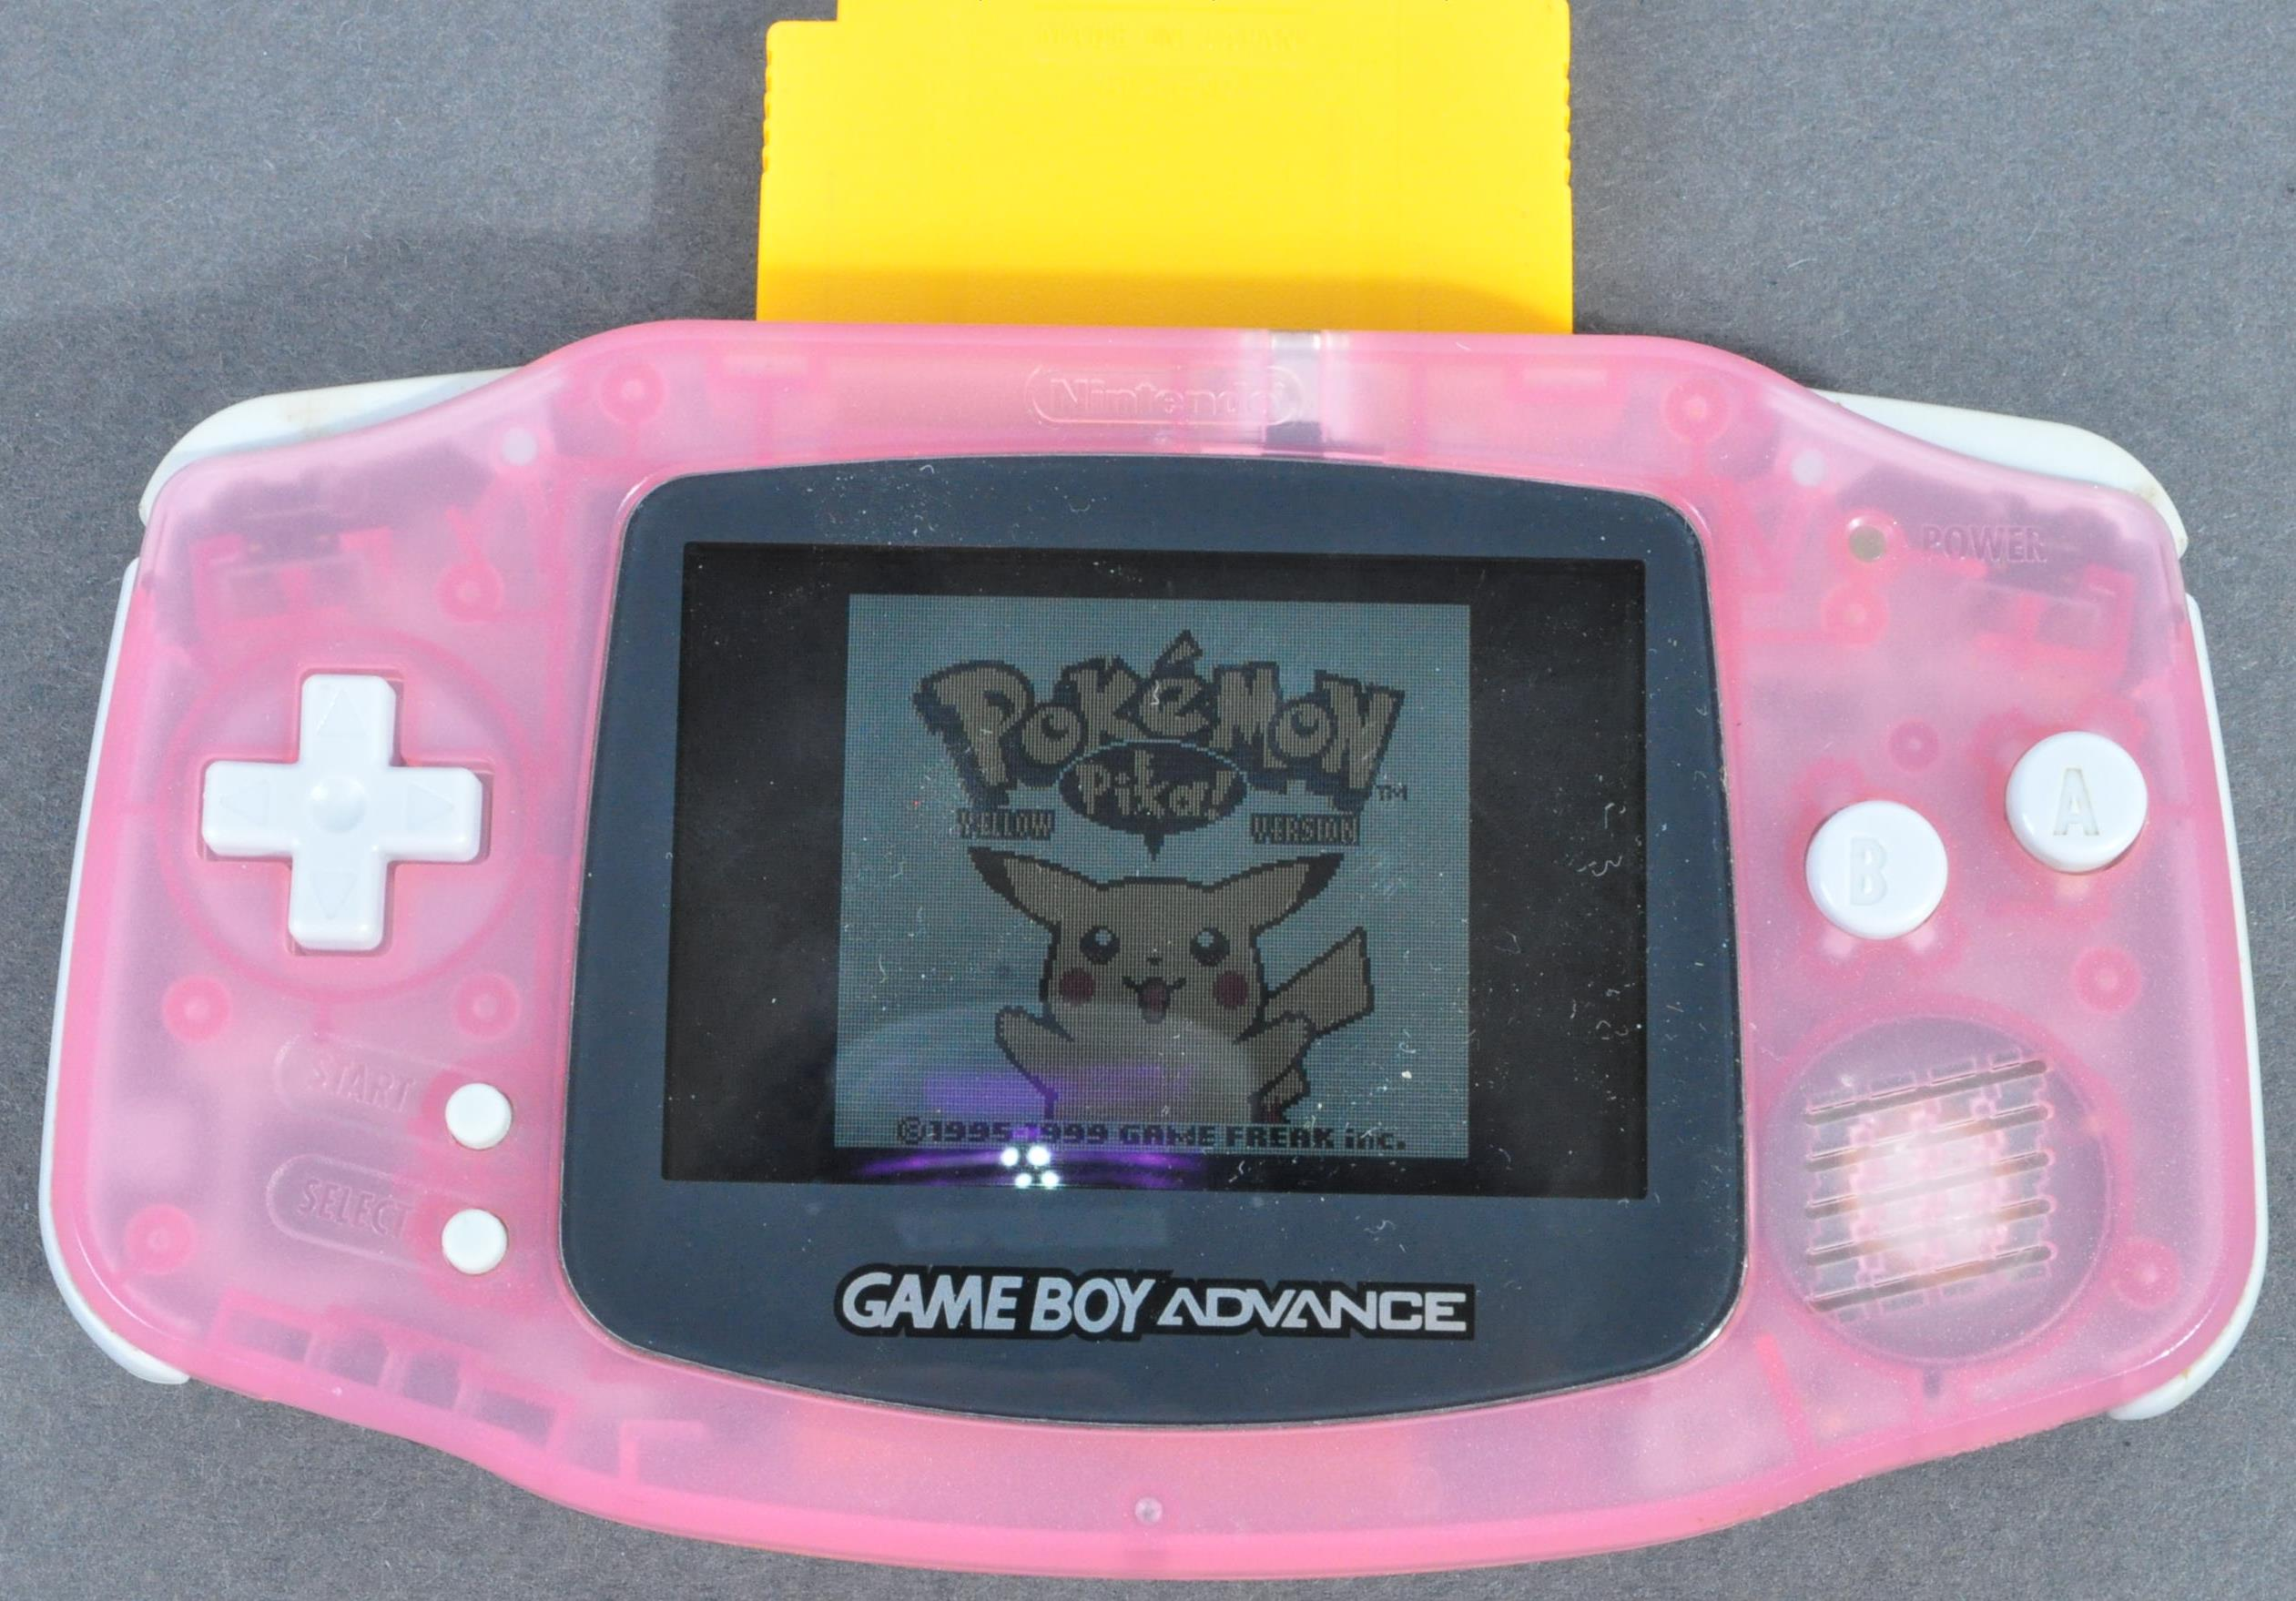 COLLECTION OF NINTENDO GAME BOYS AND GAMES - Image 7 of 7